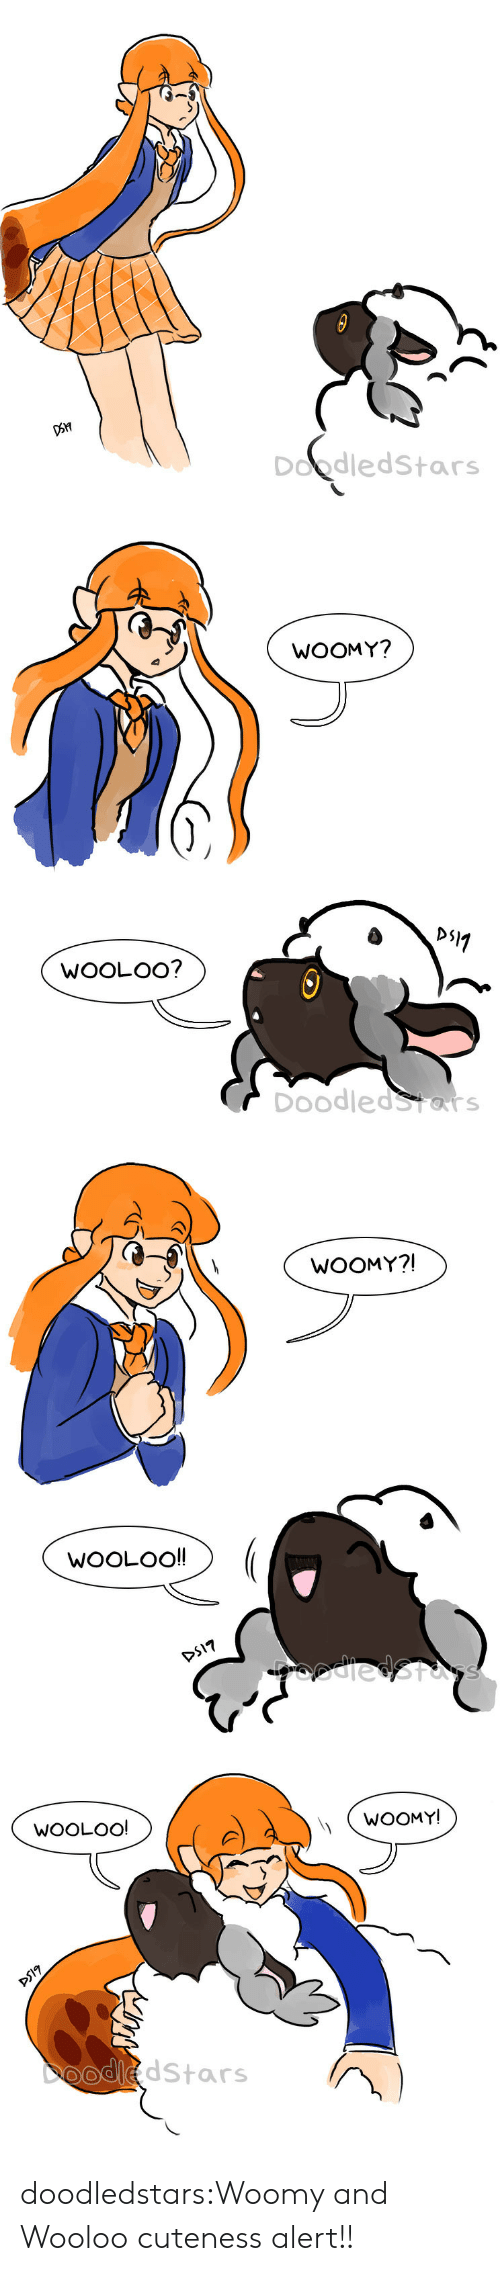 cuteness: Doodledstars   WOOMY?  WOOLOO?  DoodledStars   WOOMY?!  WOOLOO!!  DS17  odiedStas   WOOLOO!  WOOMY!  DS17  DooddStars doodledstars:Woomy and Wooloo cuteness alert!!